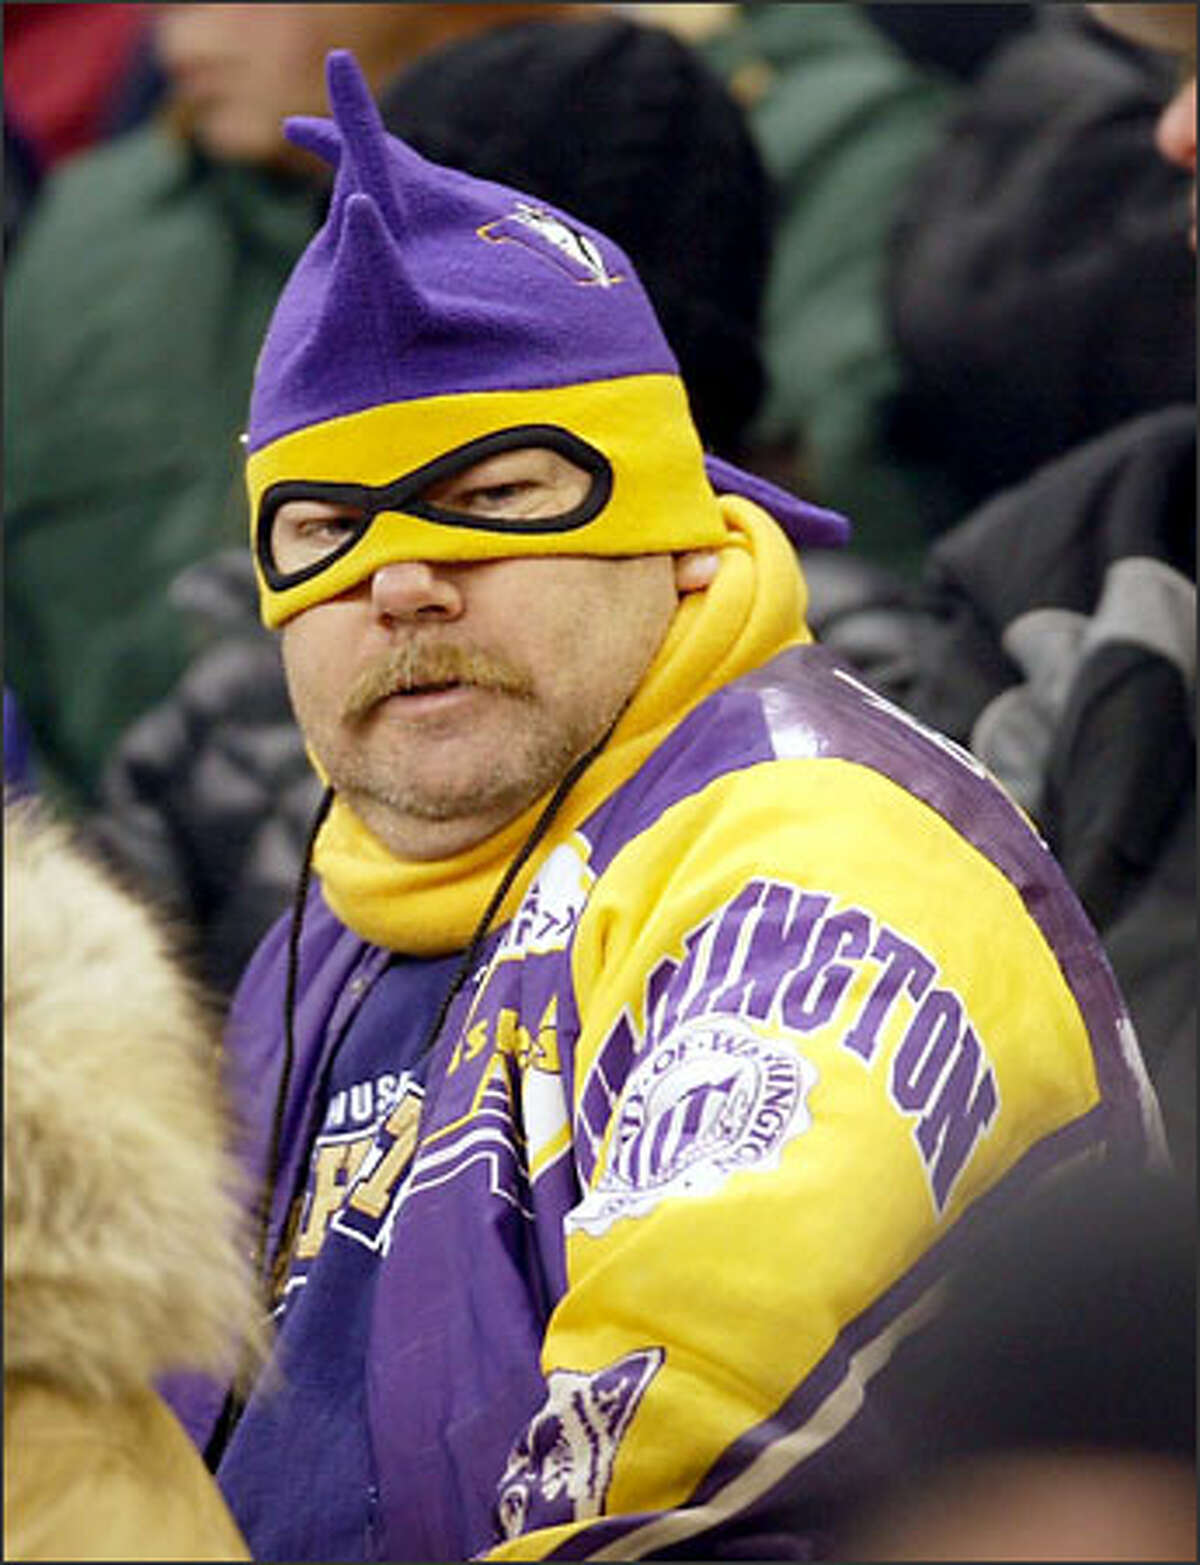 A UW fan shows his support at the Apple Cup.